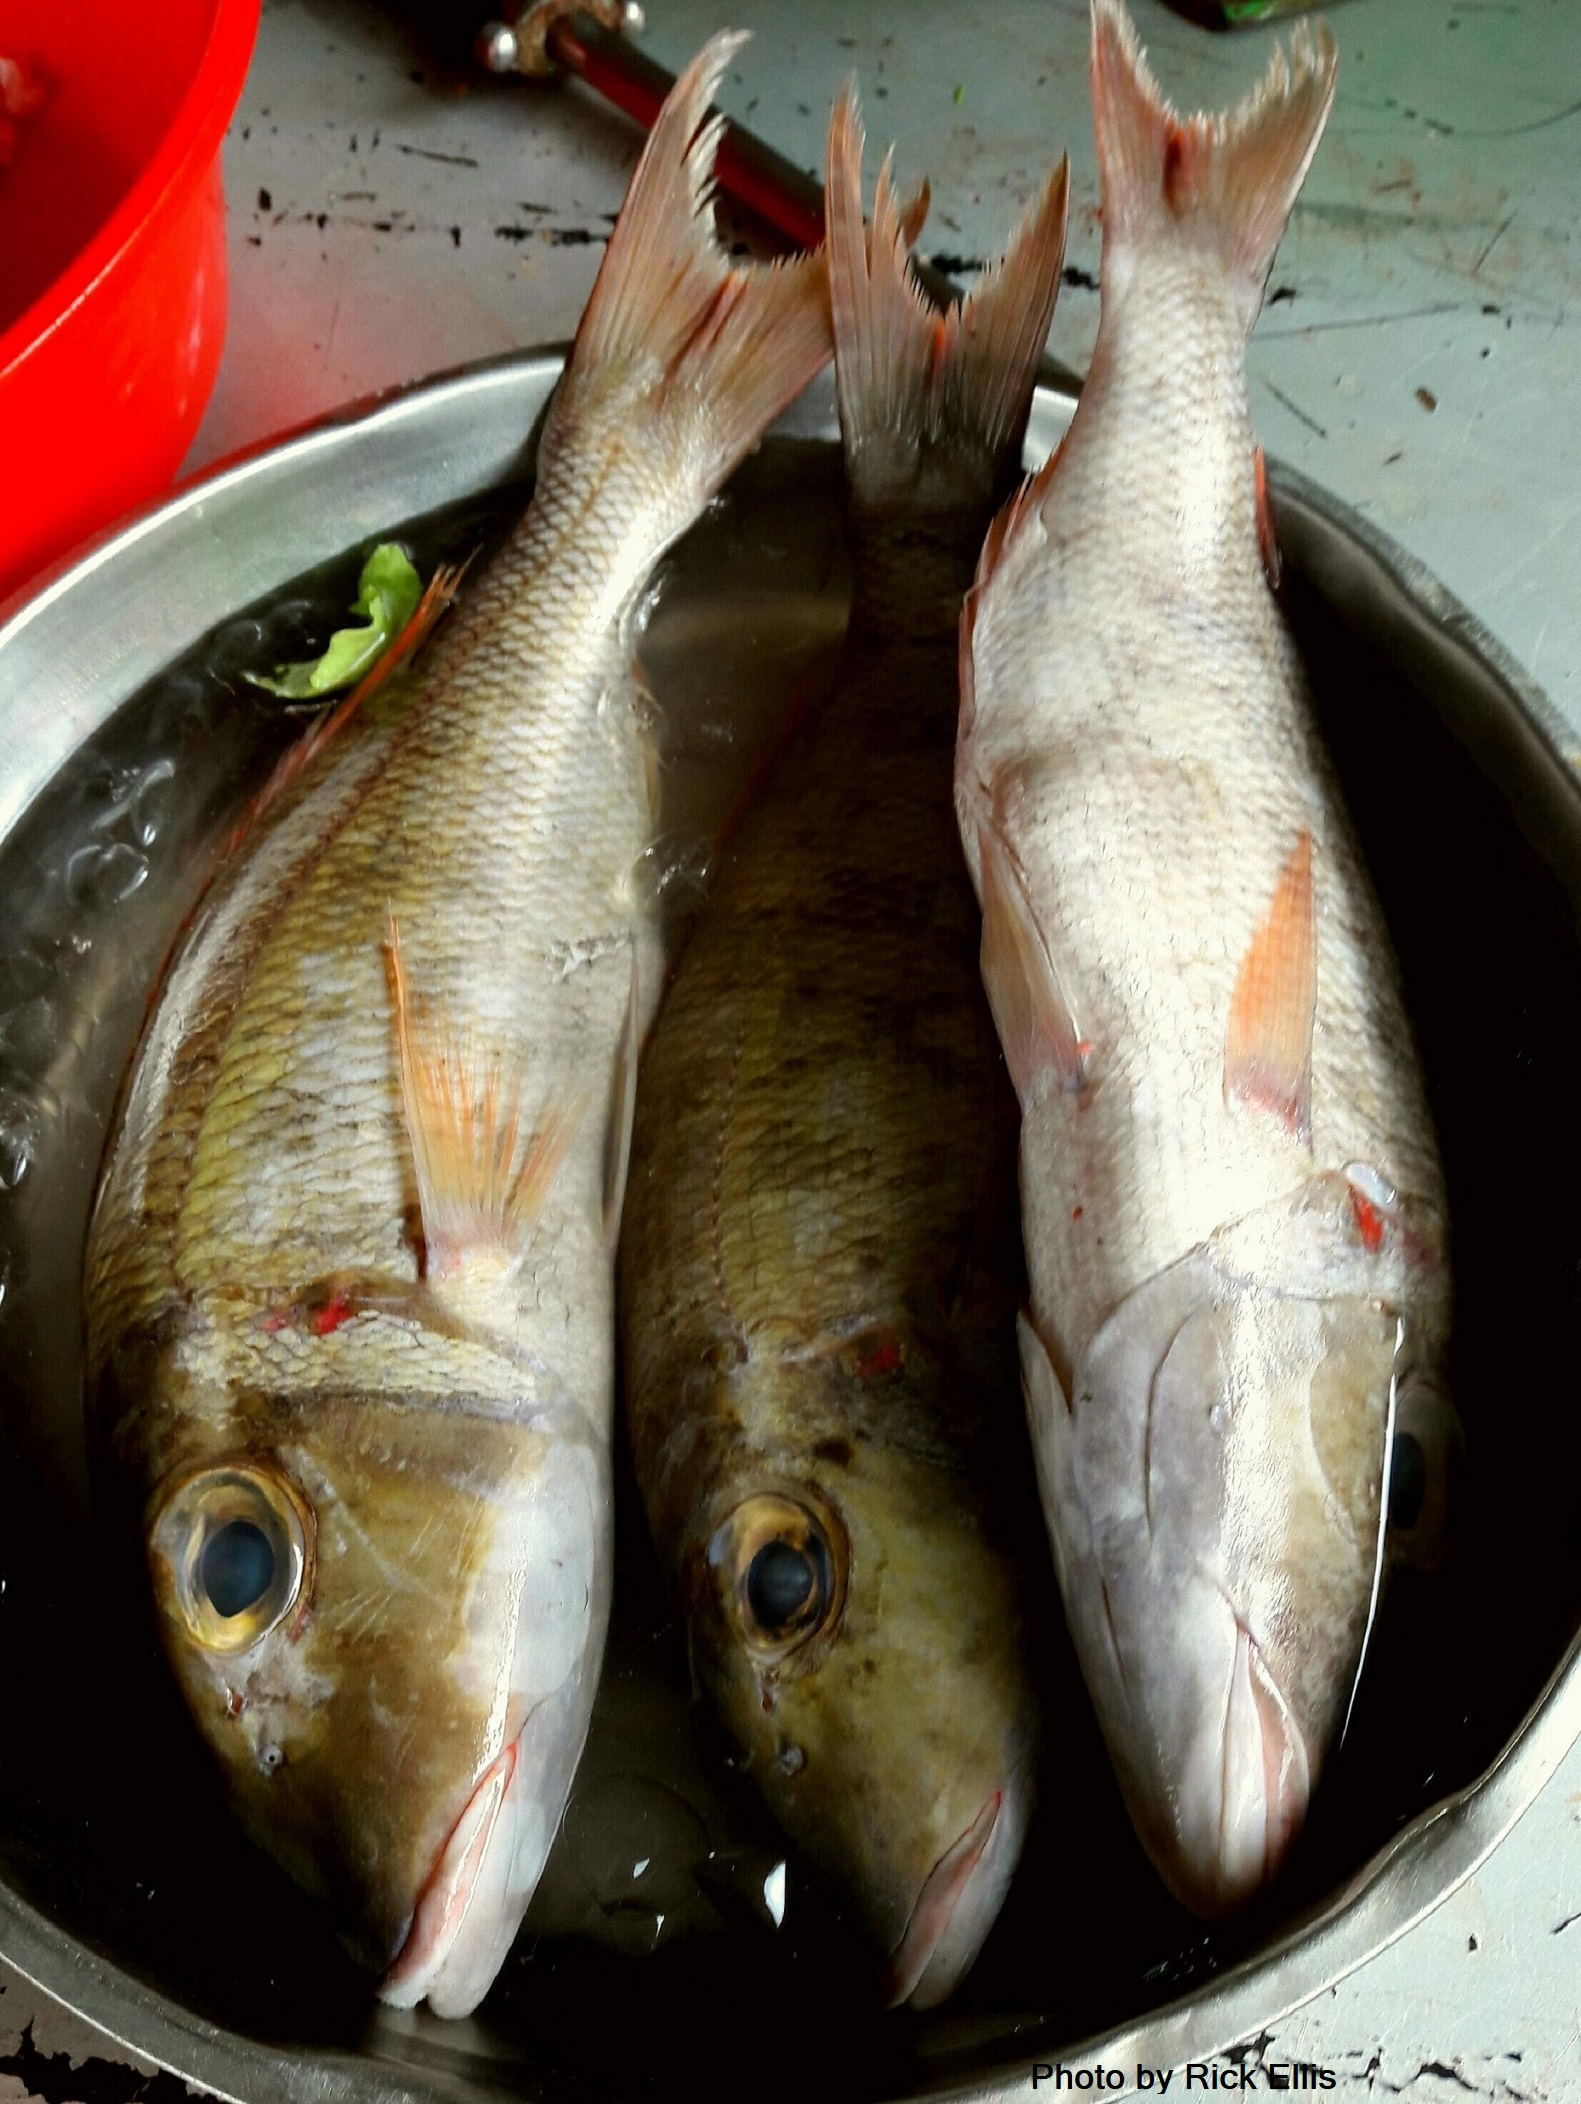 Yummy fish with heads on